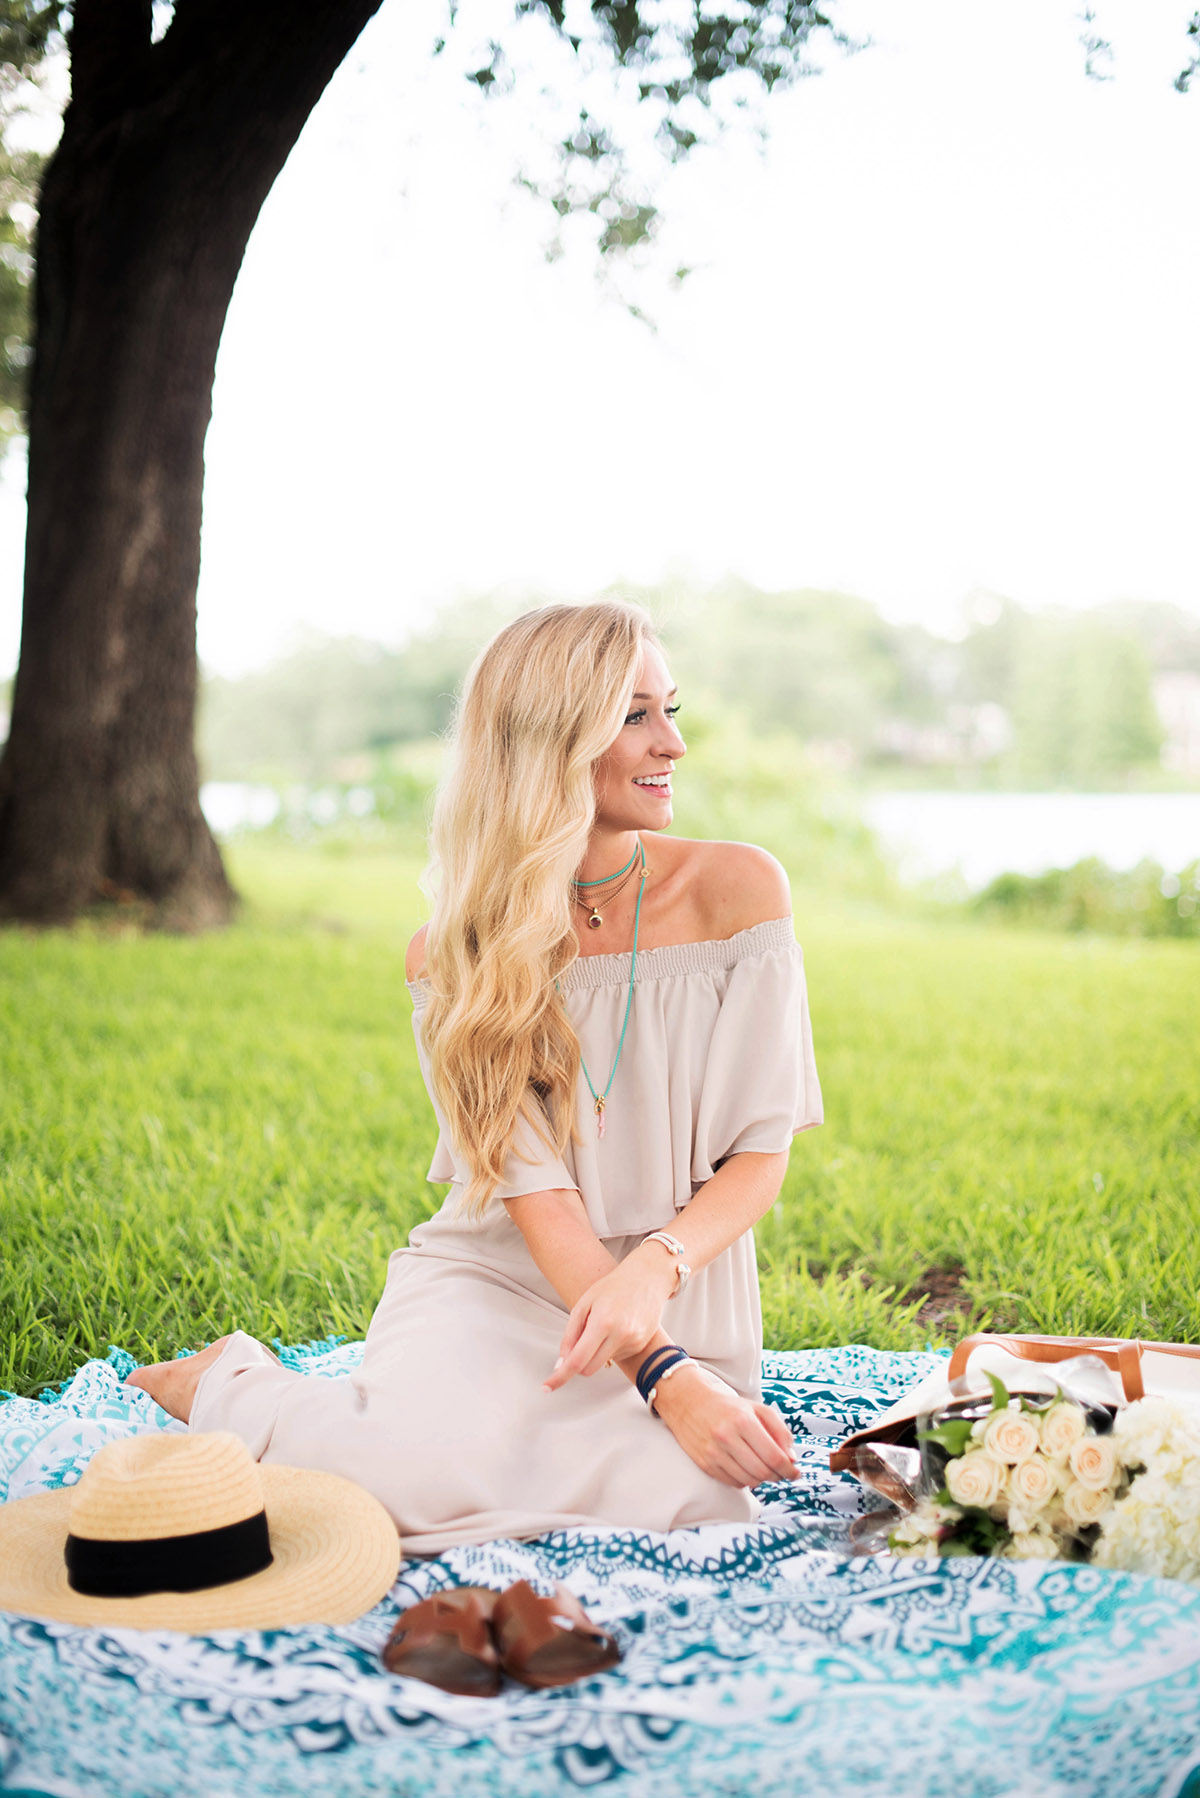 Summer Picnic Inspiration | David Yurman | Show Me Your Mumu